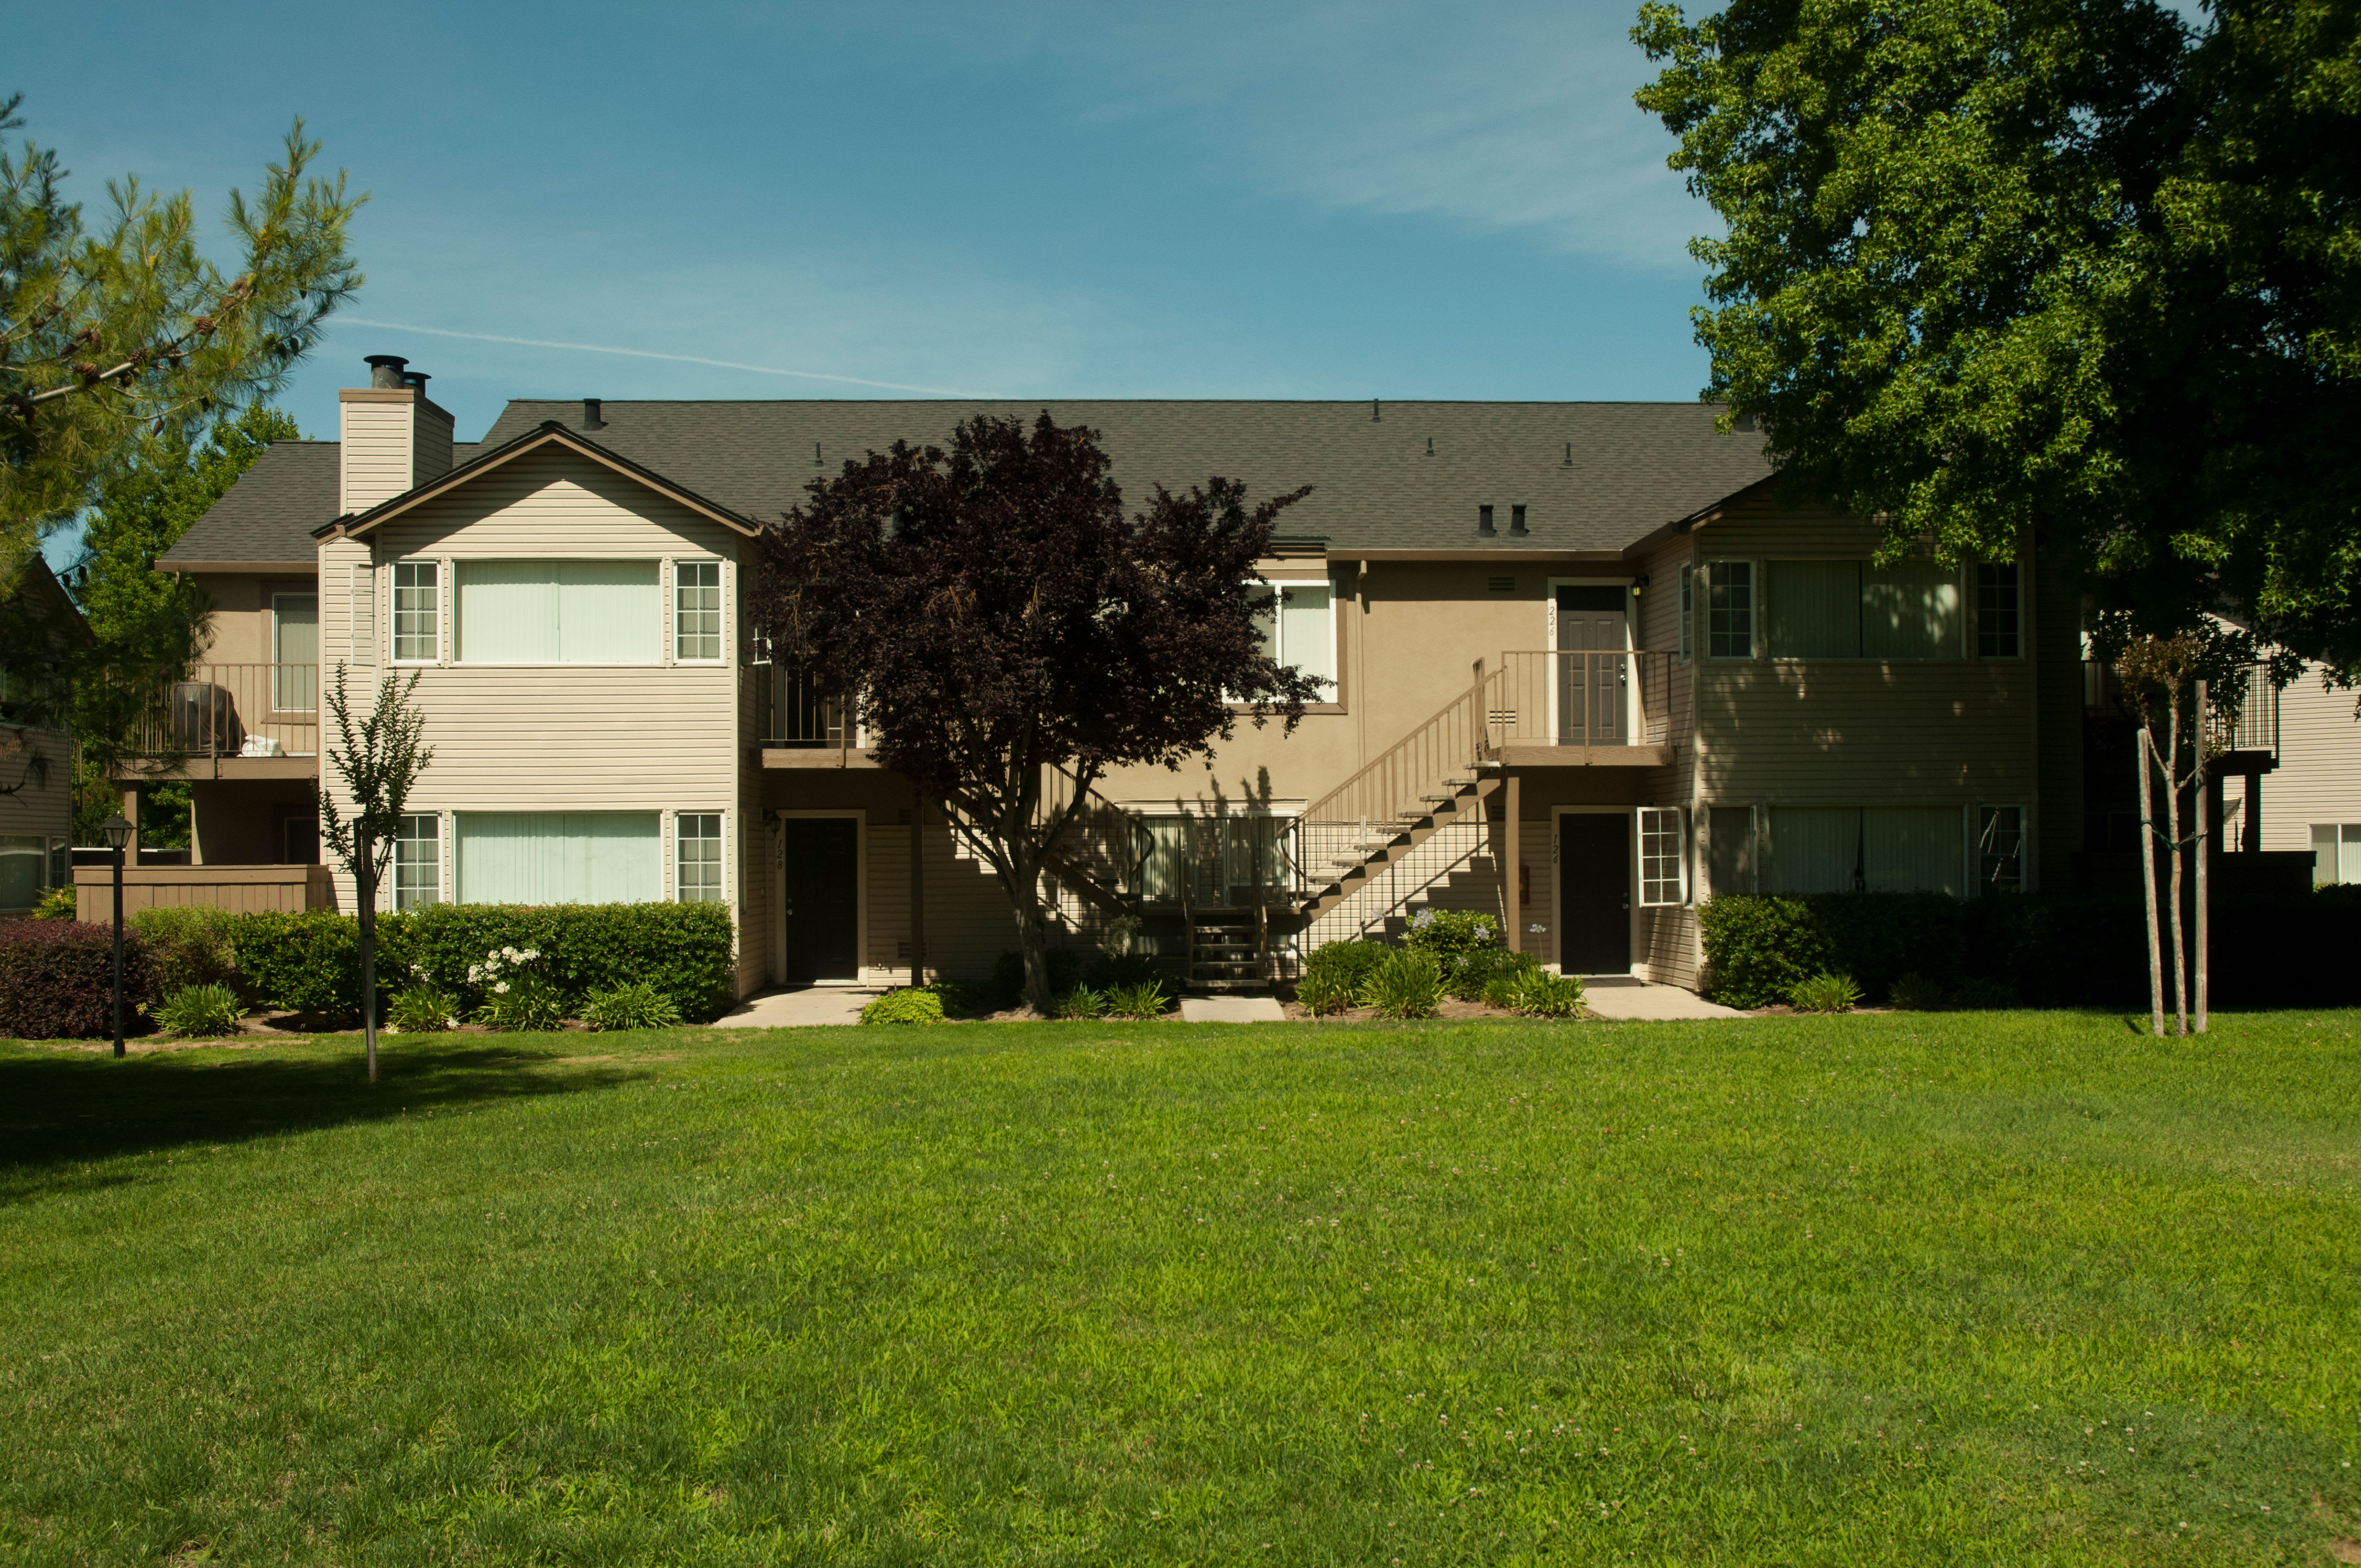 Apartment front view at Carmel Woods in Modesto, California